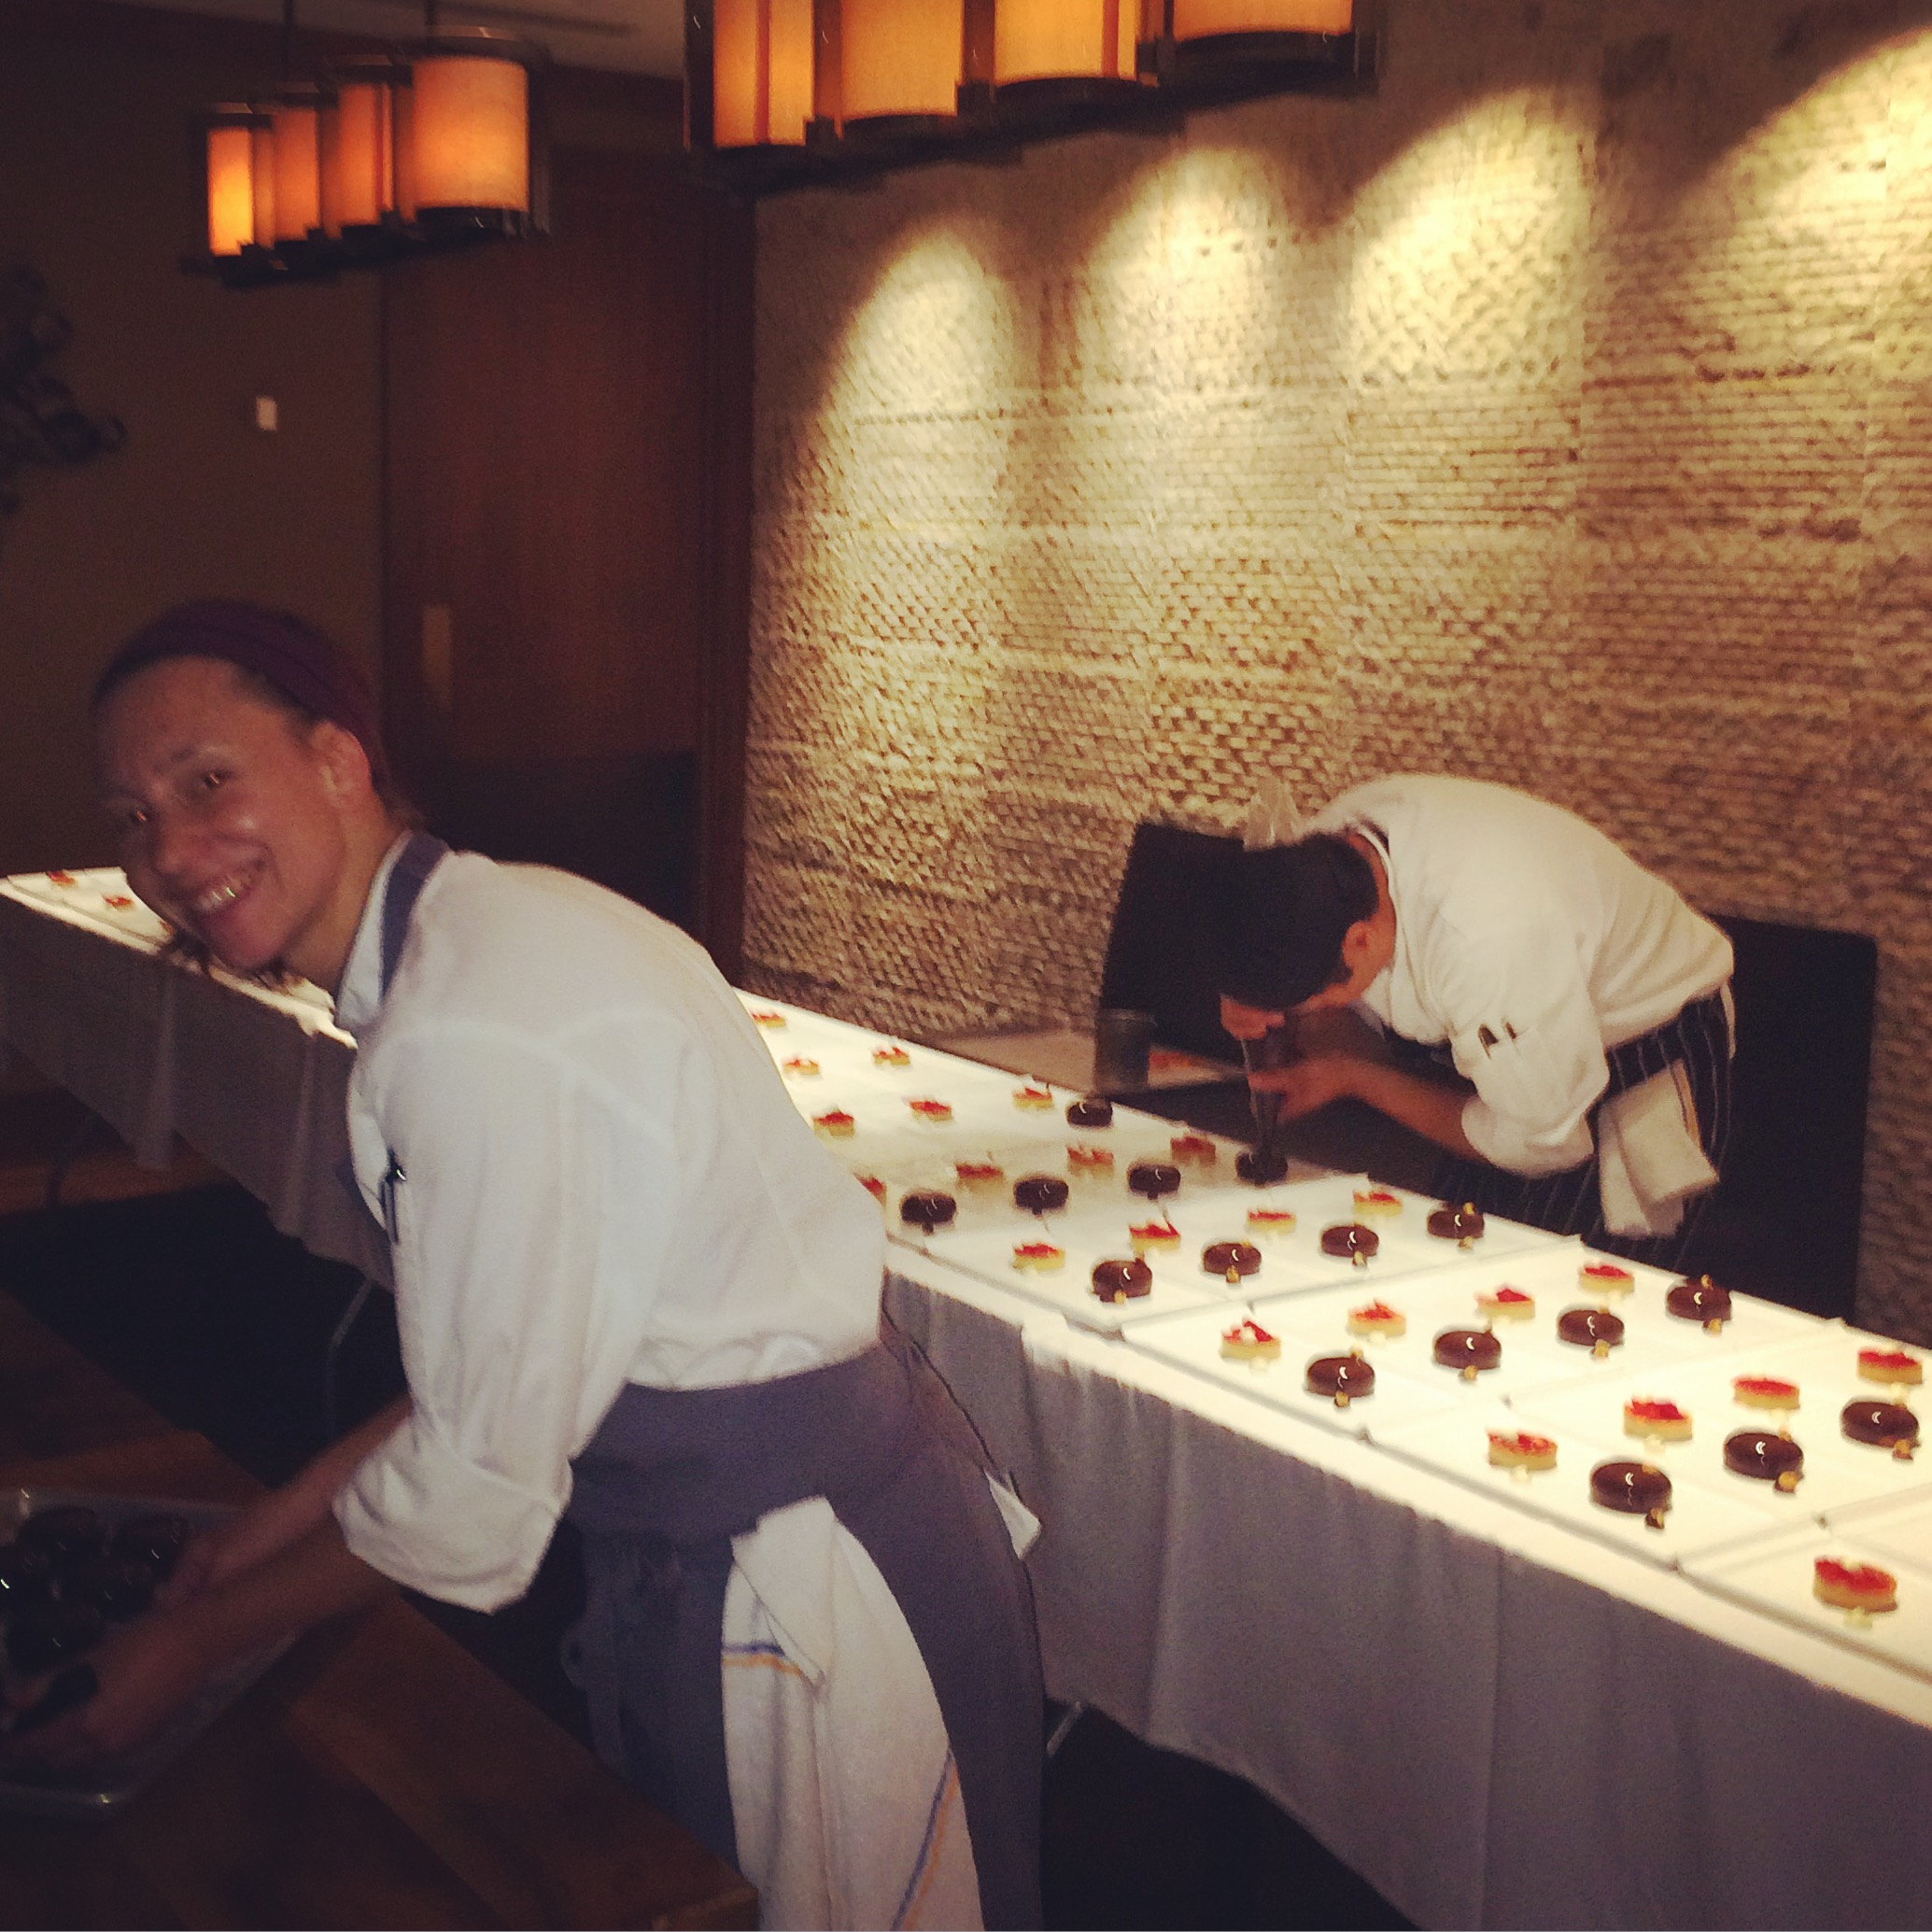 Pastry Chef at Ritz-Carlton plating our desserts